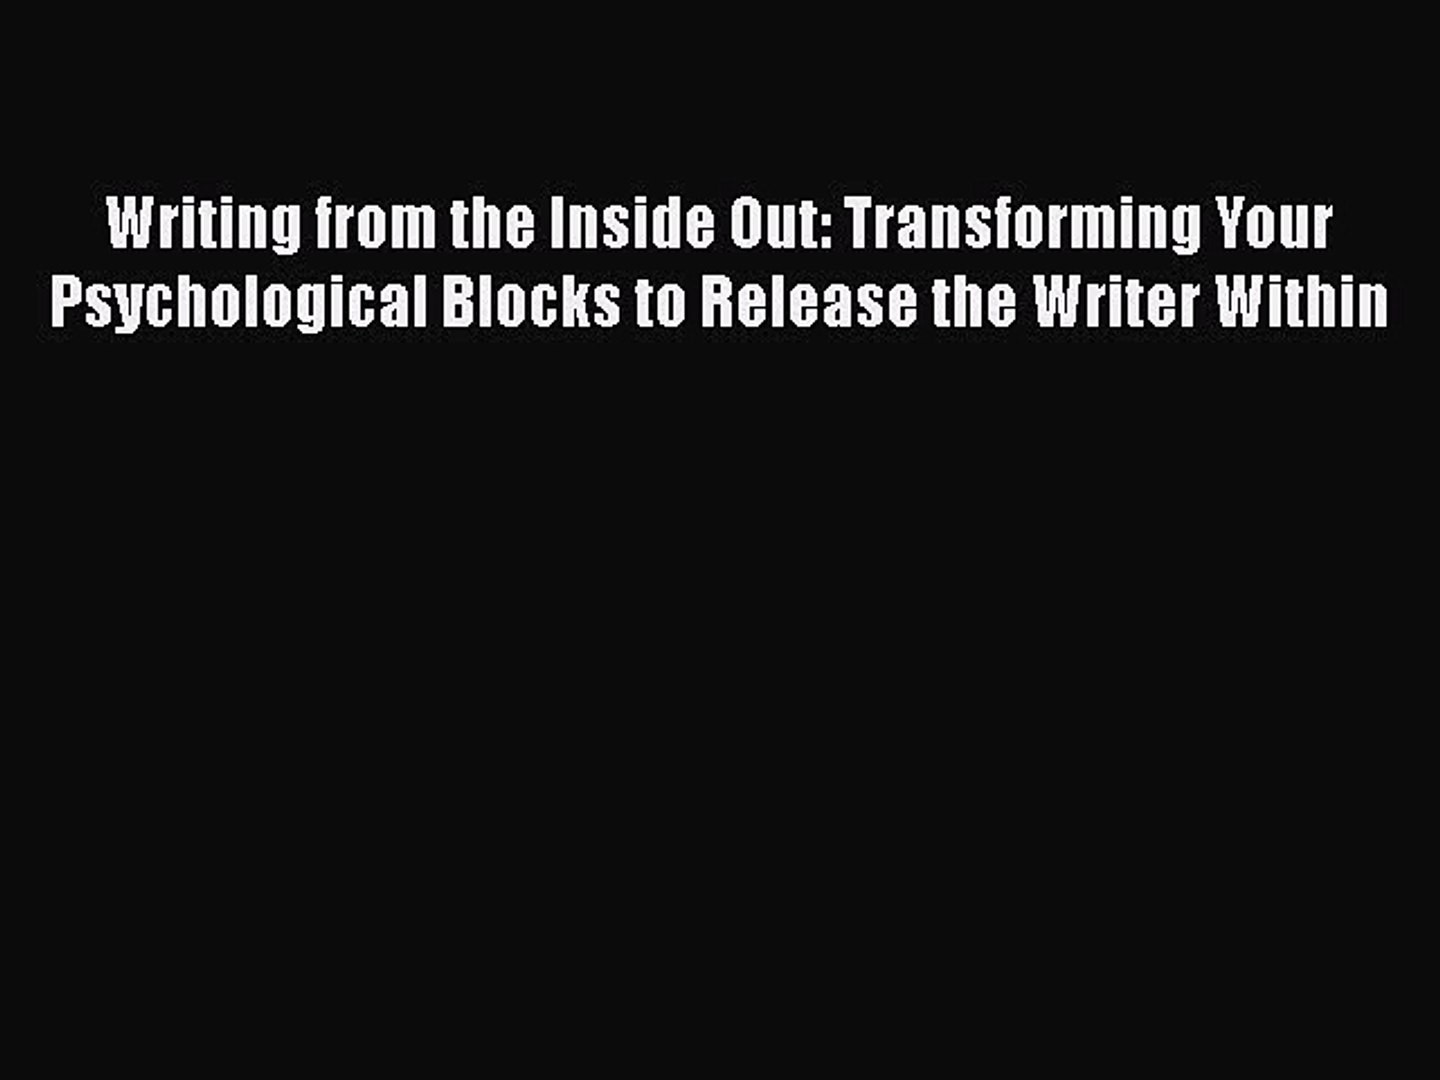 [Read book] Writing from the Inside Out: Transforming Your Psychological Blocks to Release